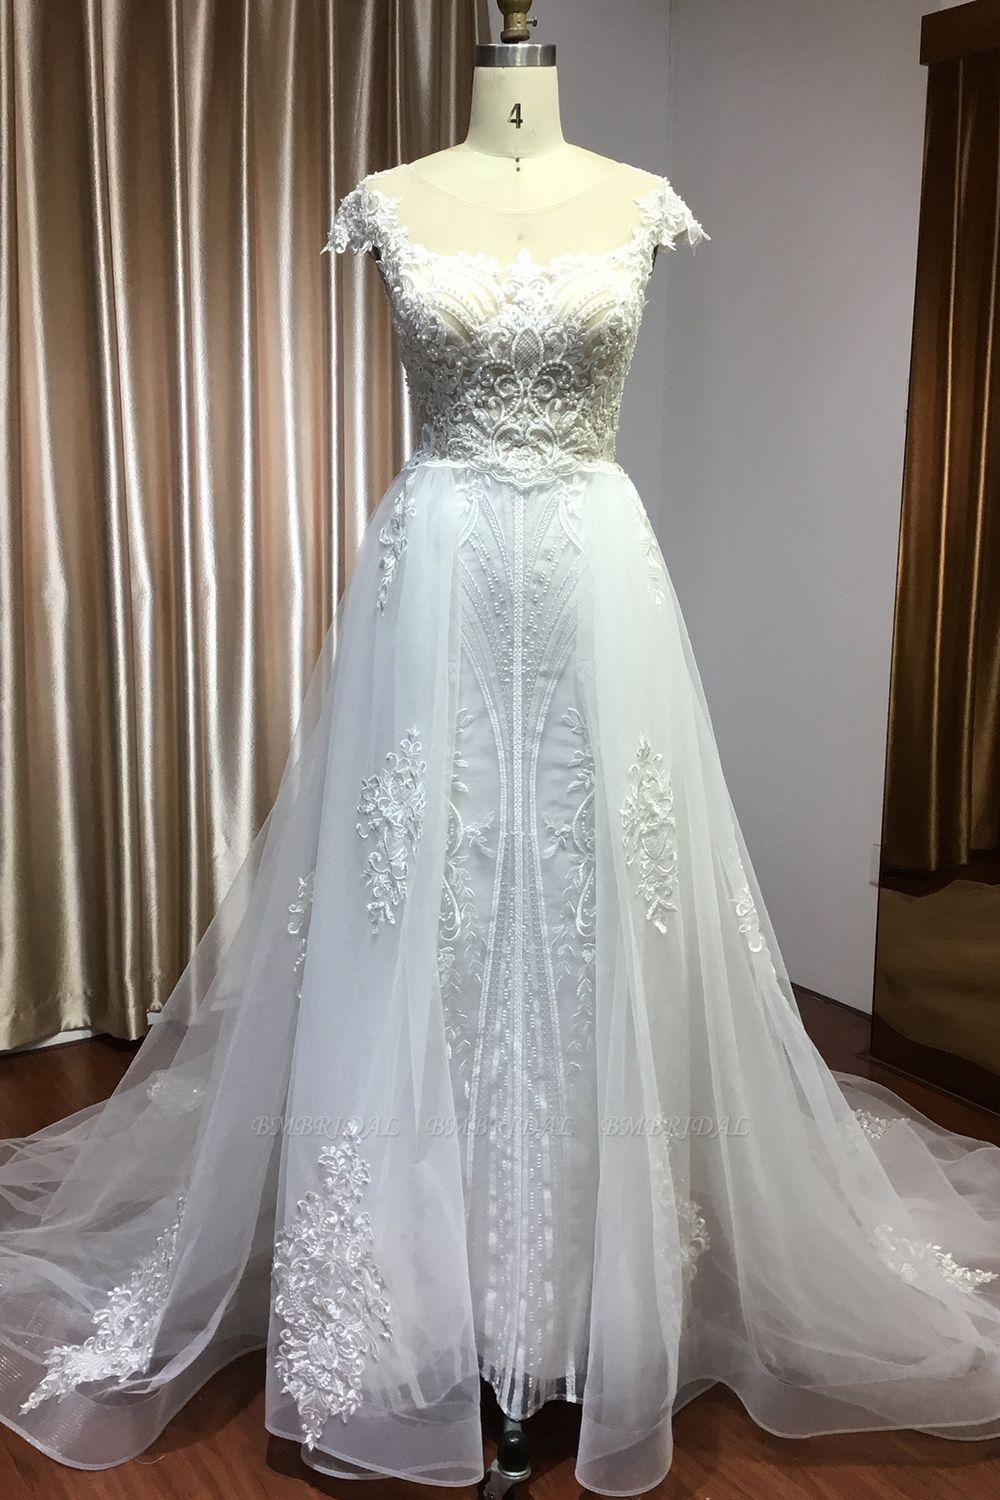 BMbridal Detachable Lace Mermaid Wedding Dress With Cap Sleeves